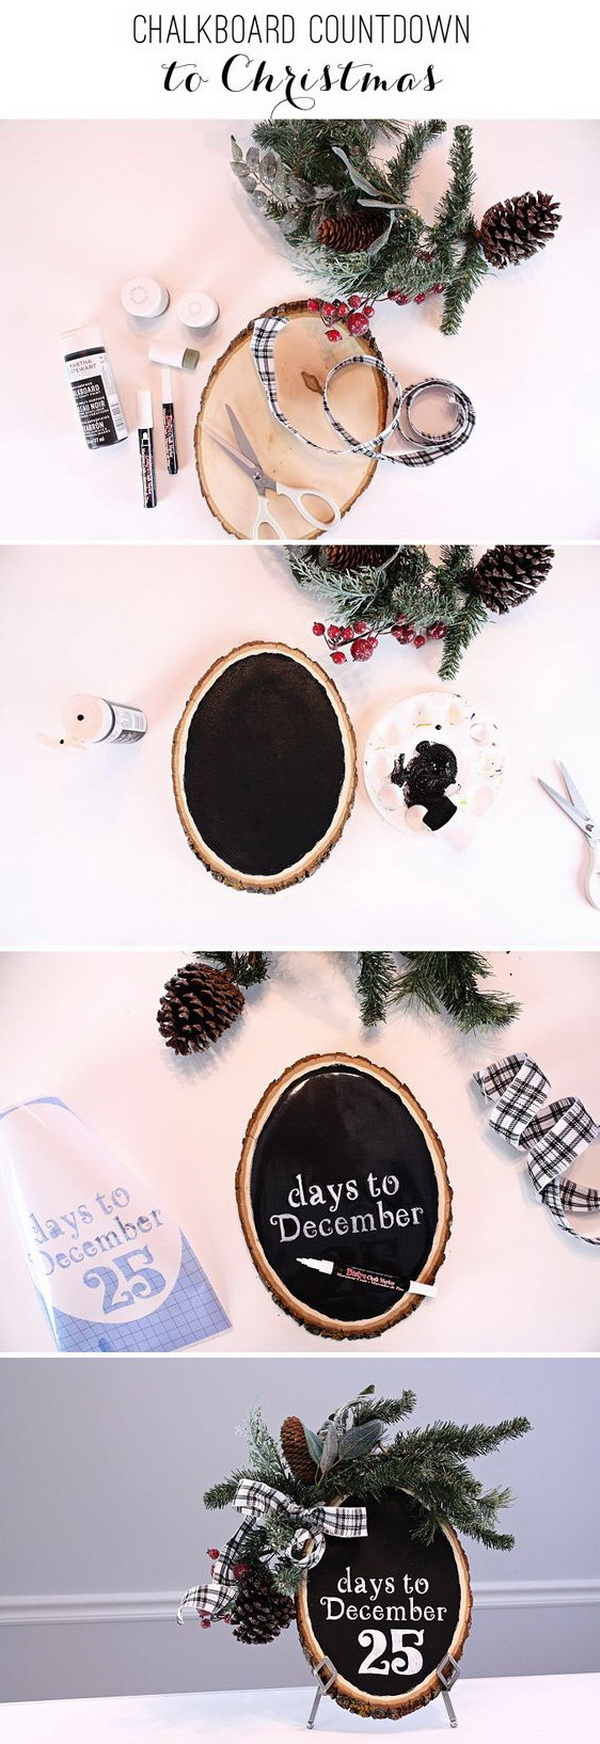 Easy DIY Chalkboard Countdown to Christmas Advent Calendar. This DIY chalkboard Christmas advent calendar is a fun way to count down the days until Christmas.